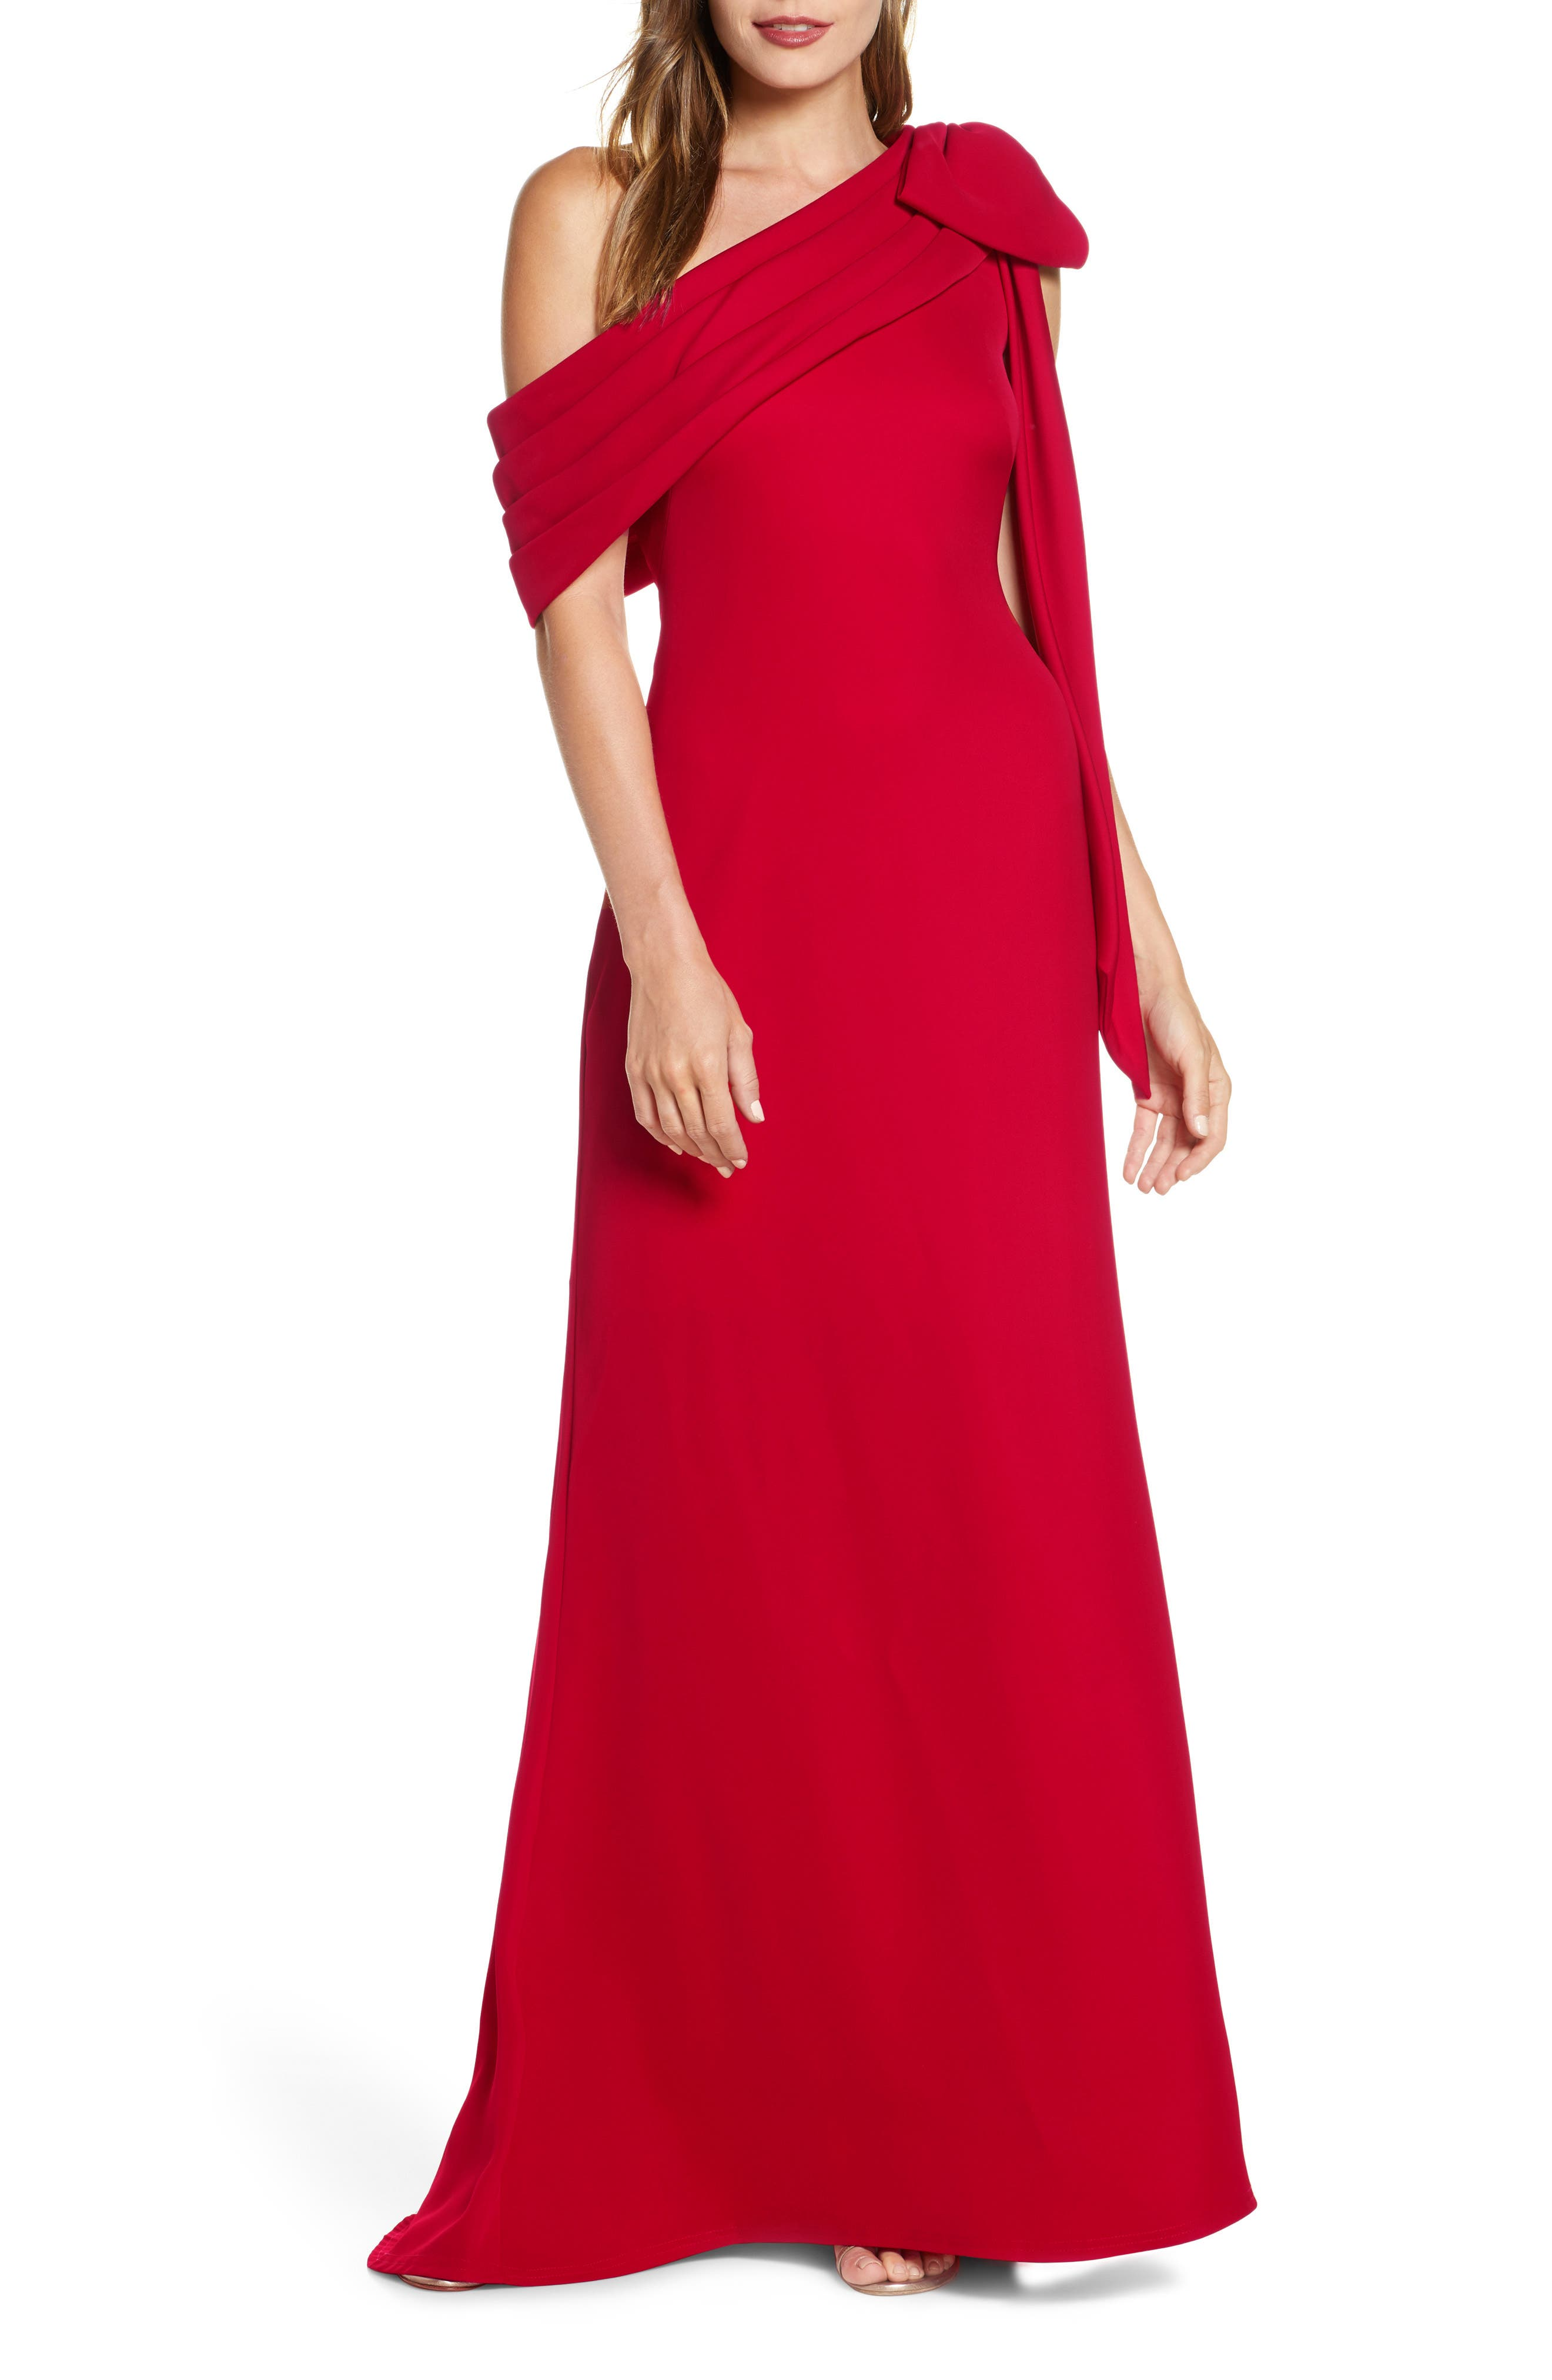 1950s Formal Dresses & Evening Gowns to Buy Womens Tadashi Shoji Crepe Gown Size 6 - Red $368.00 AT vintagedancer.com